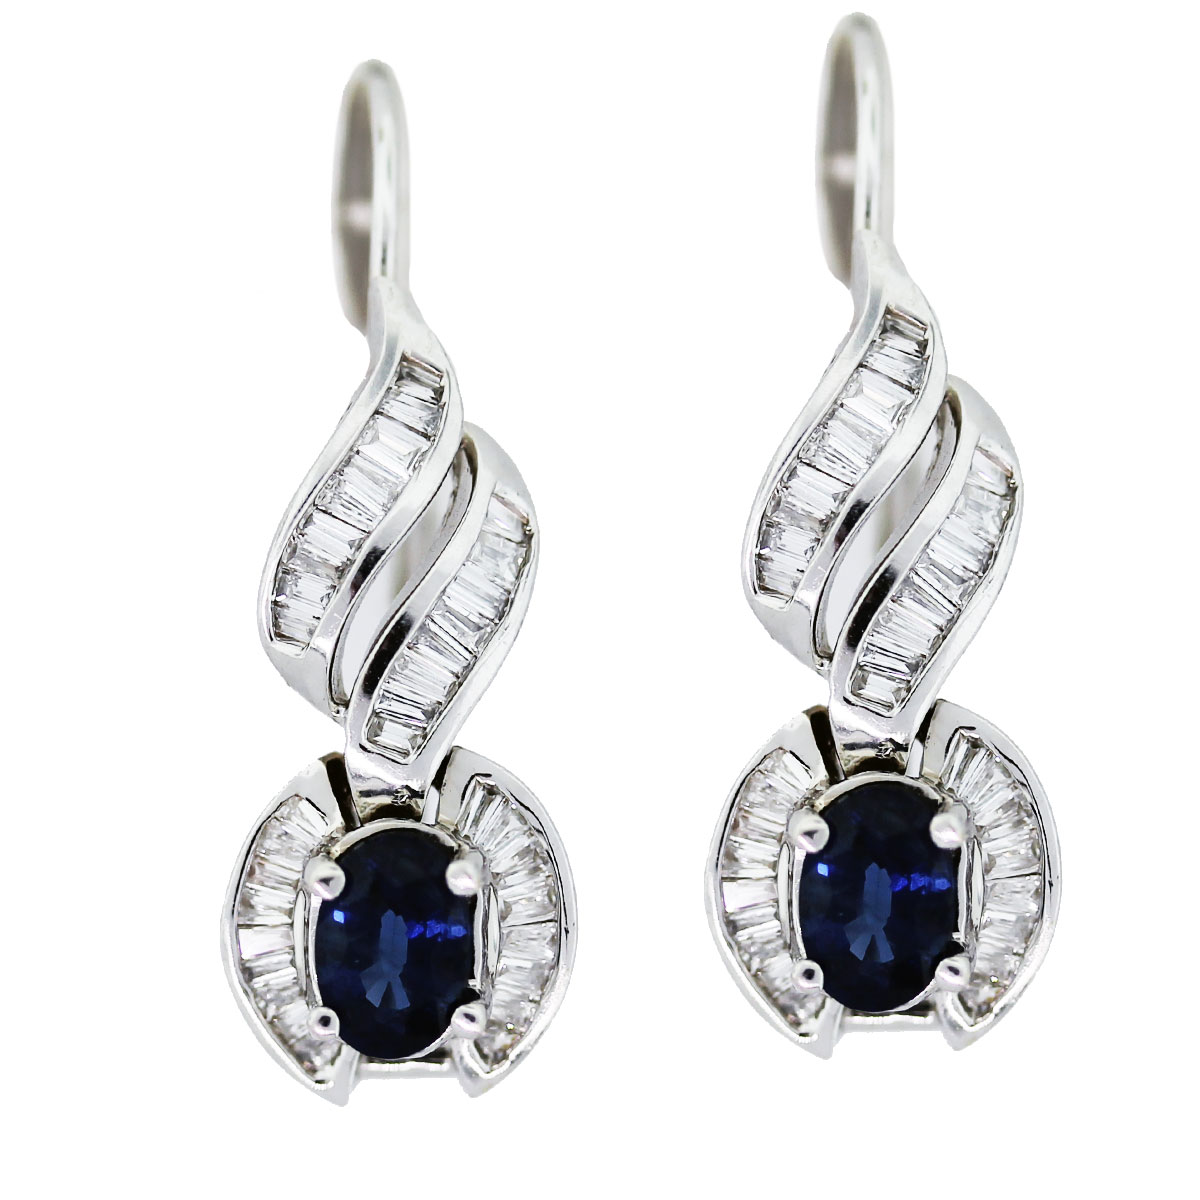 14k white gold diamond earrings cqsuwfj